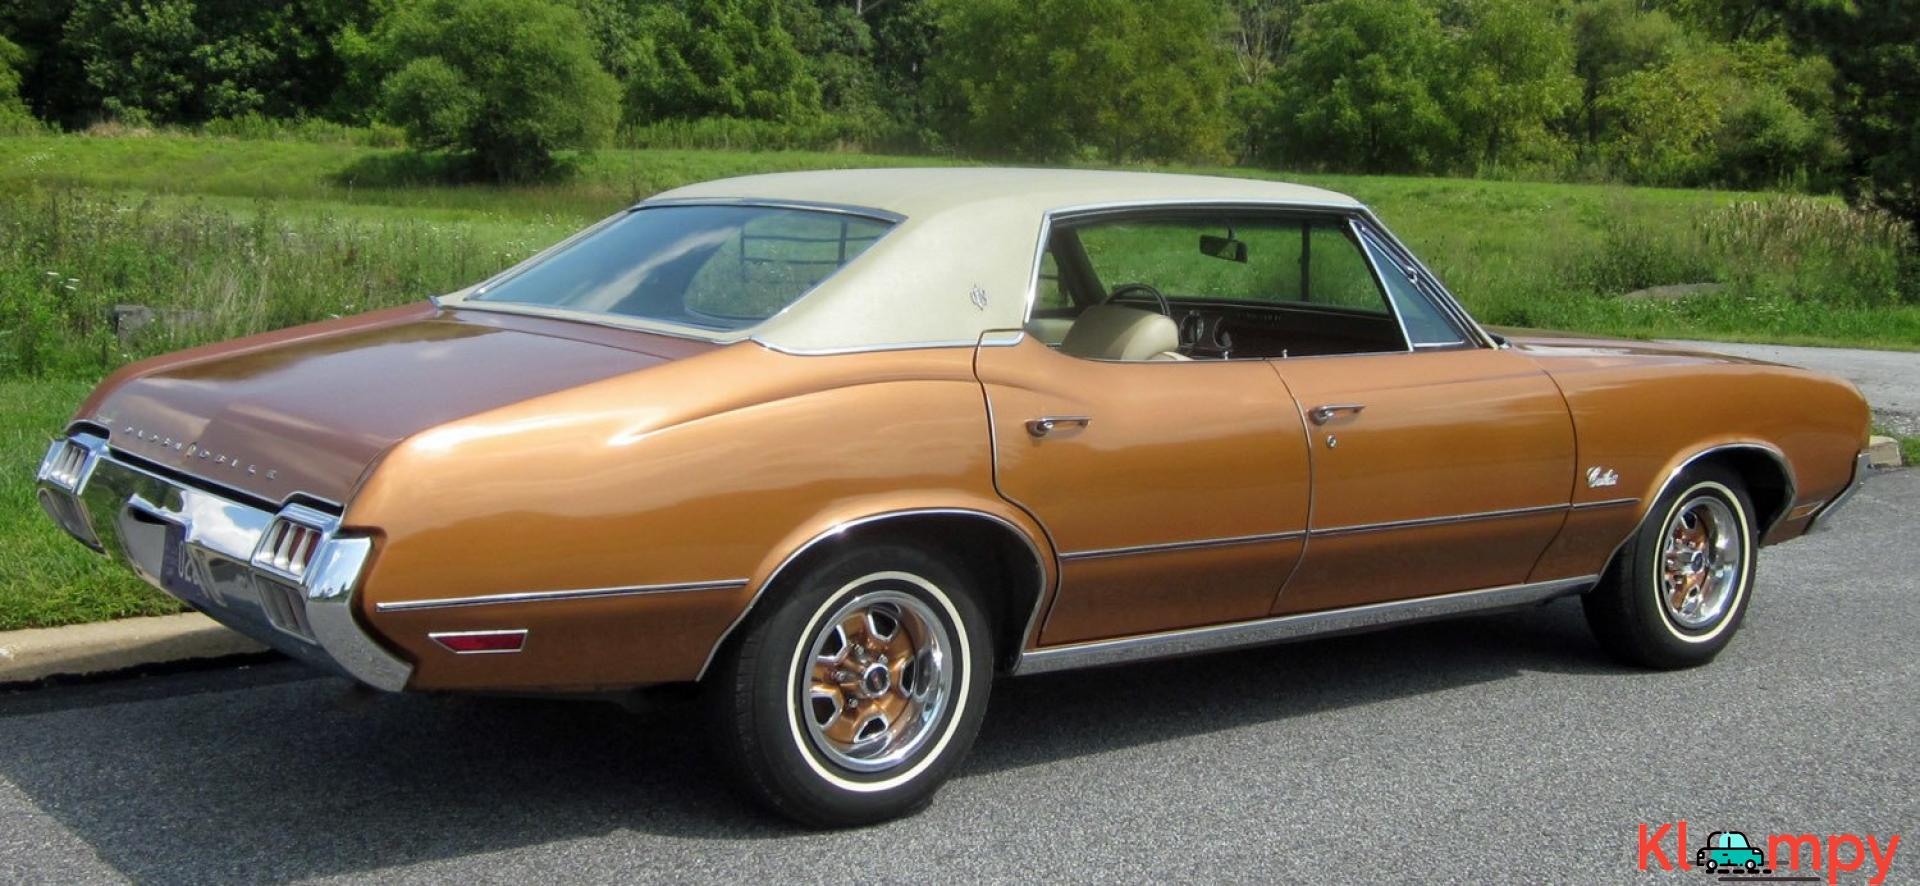 1972 Oldsmobile Cutlass Sport Sedan V8 - 7/20